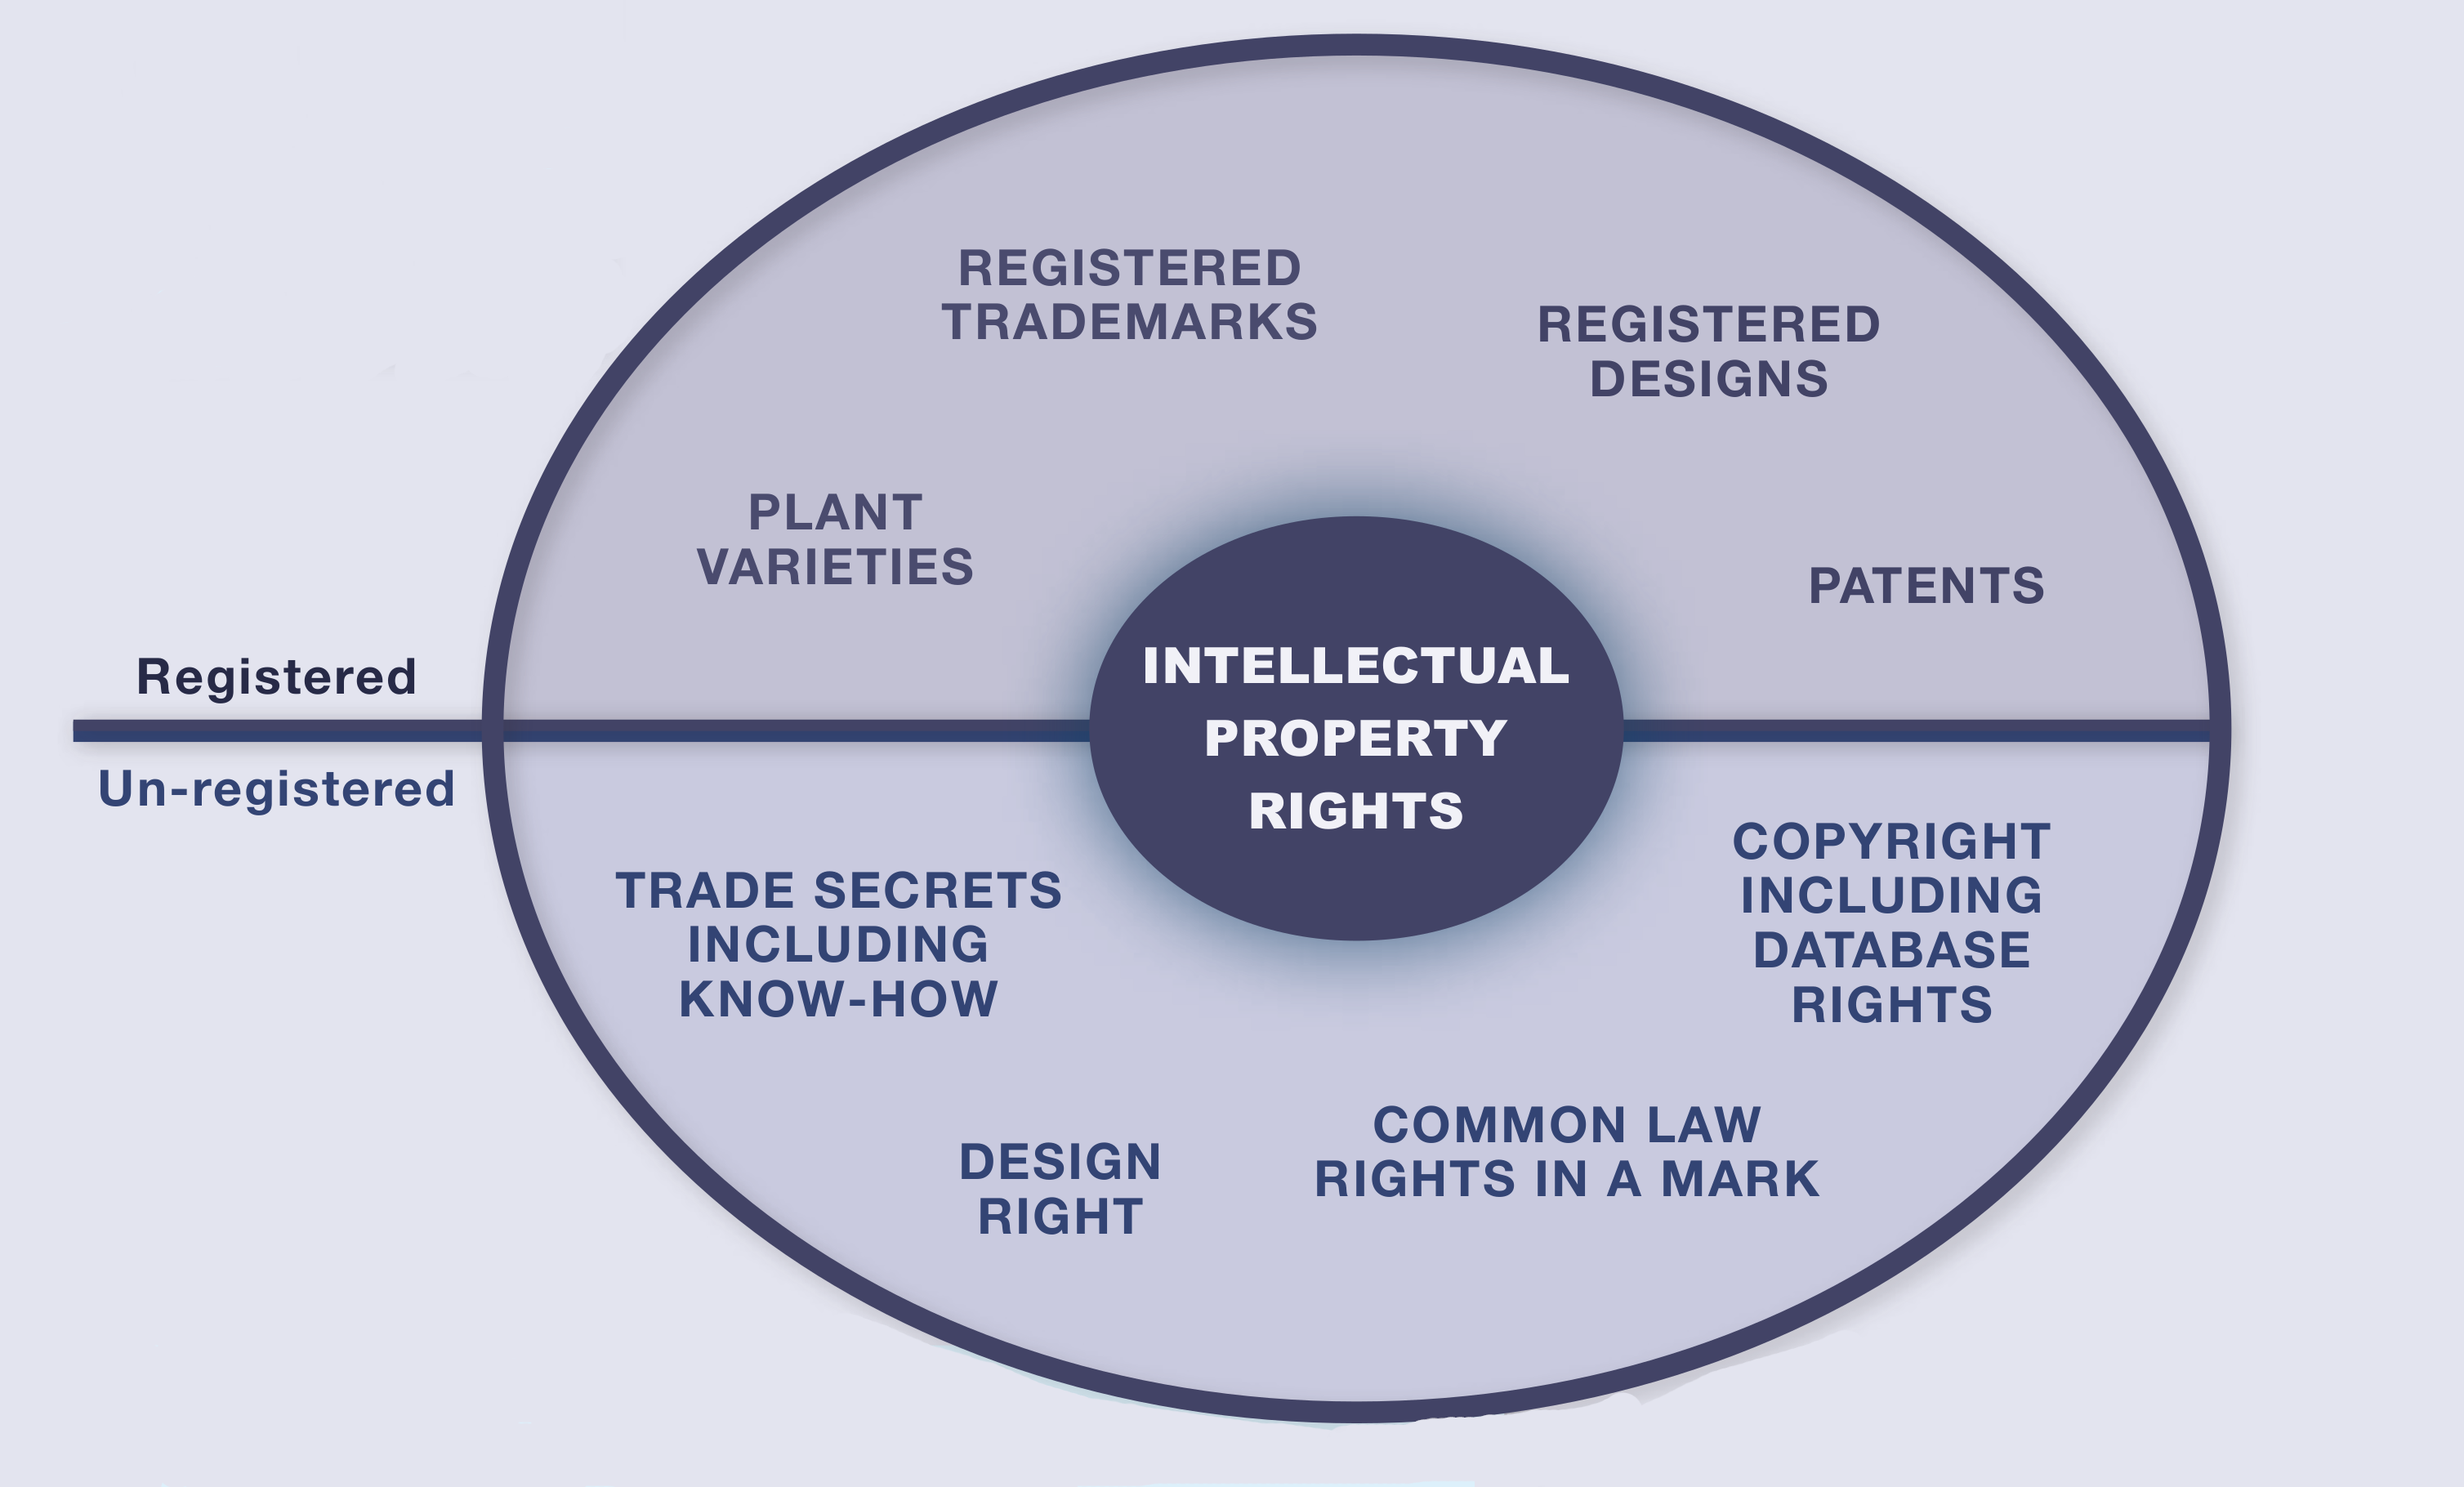 content/images/entrepreneurial-innovation/ip-types.png